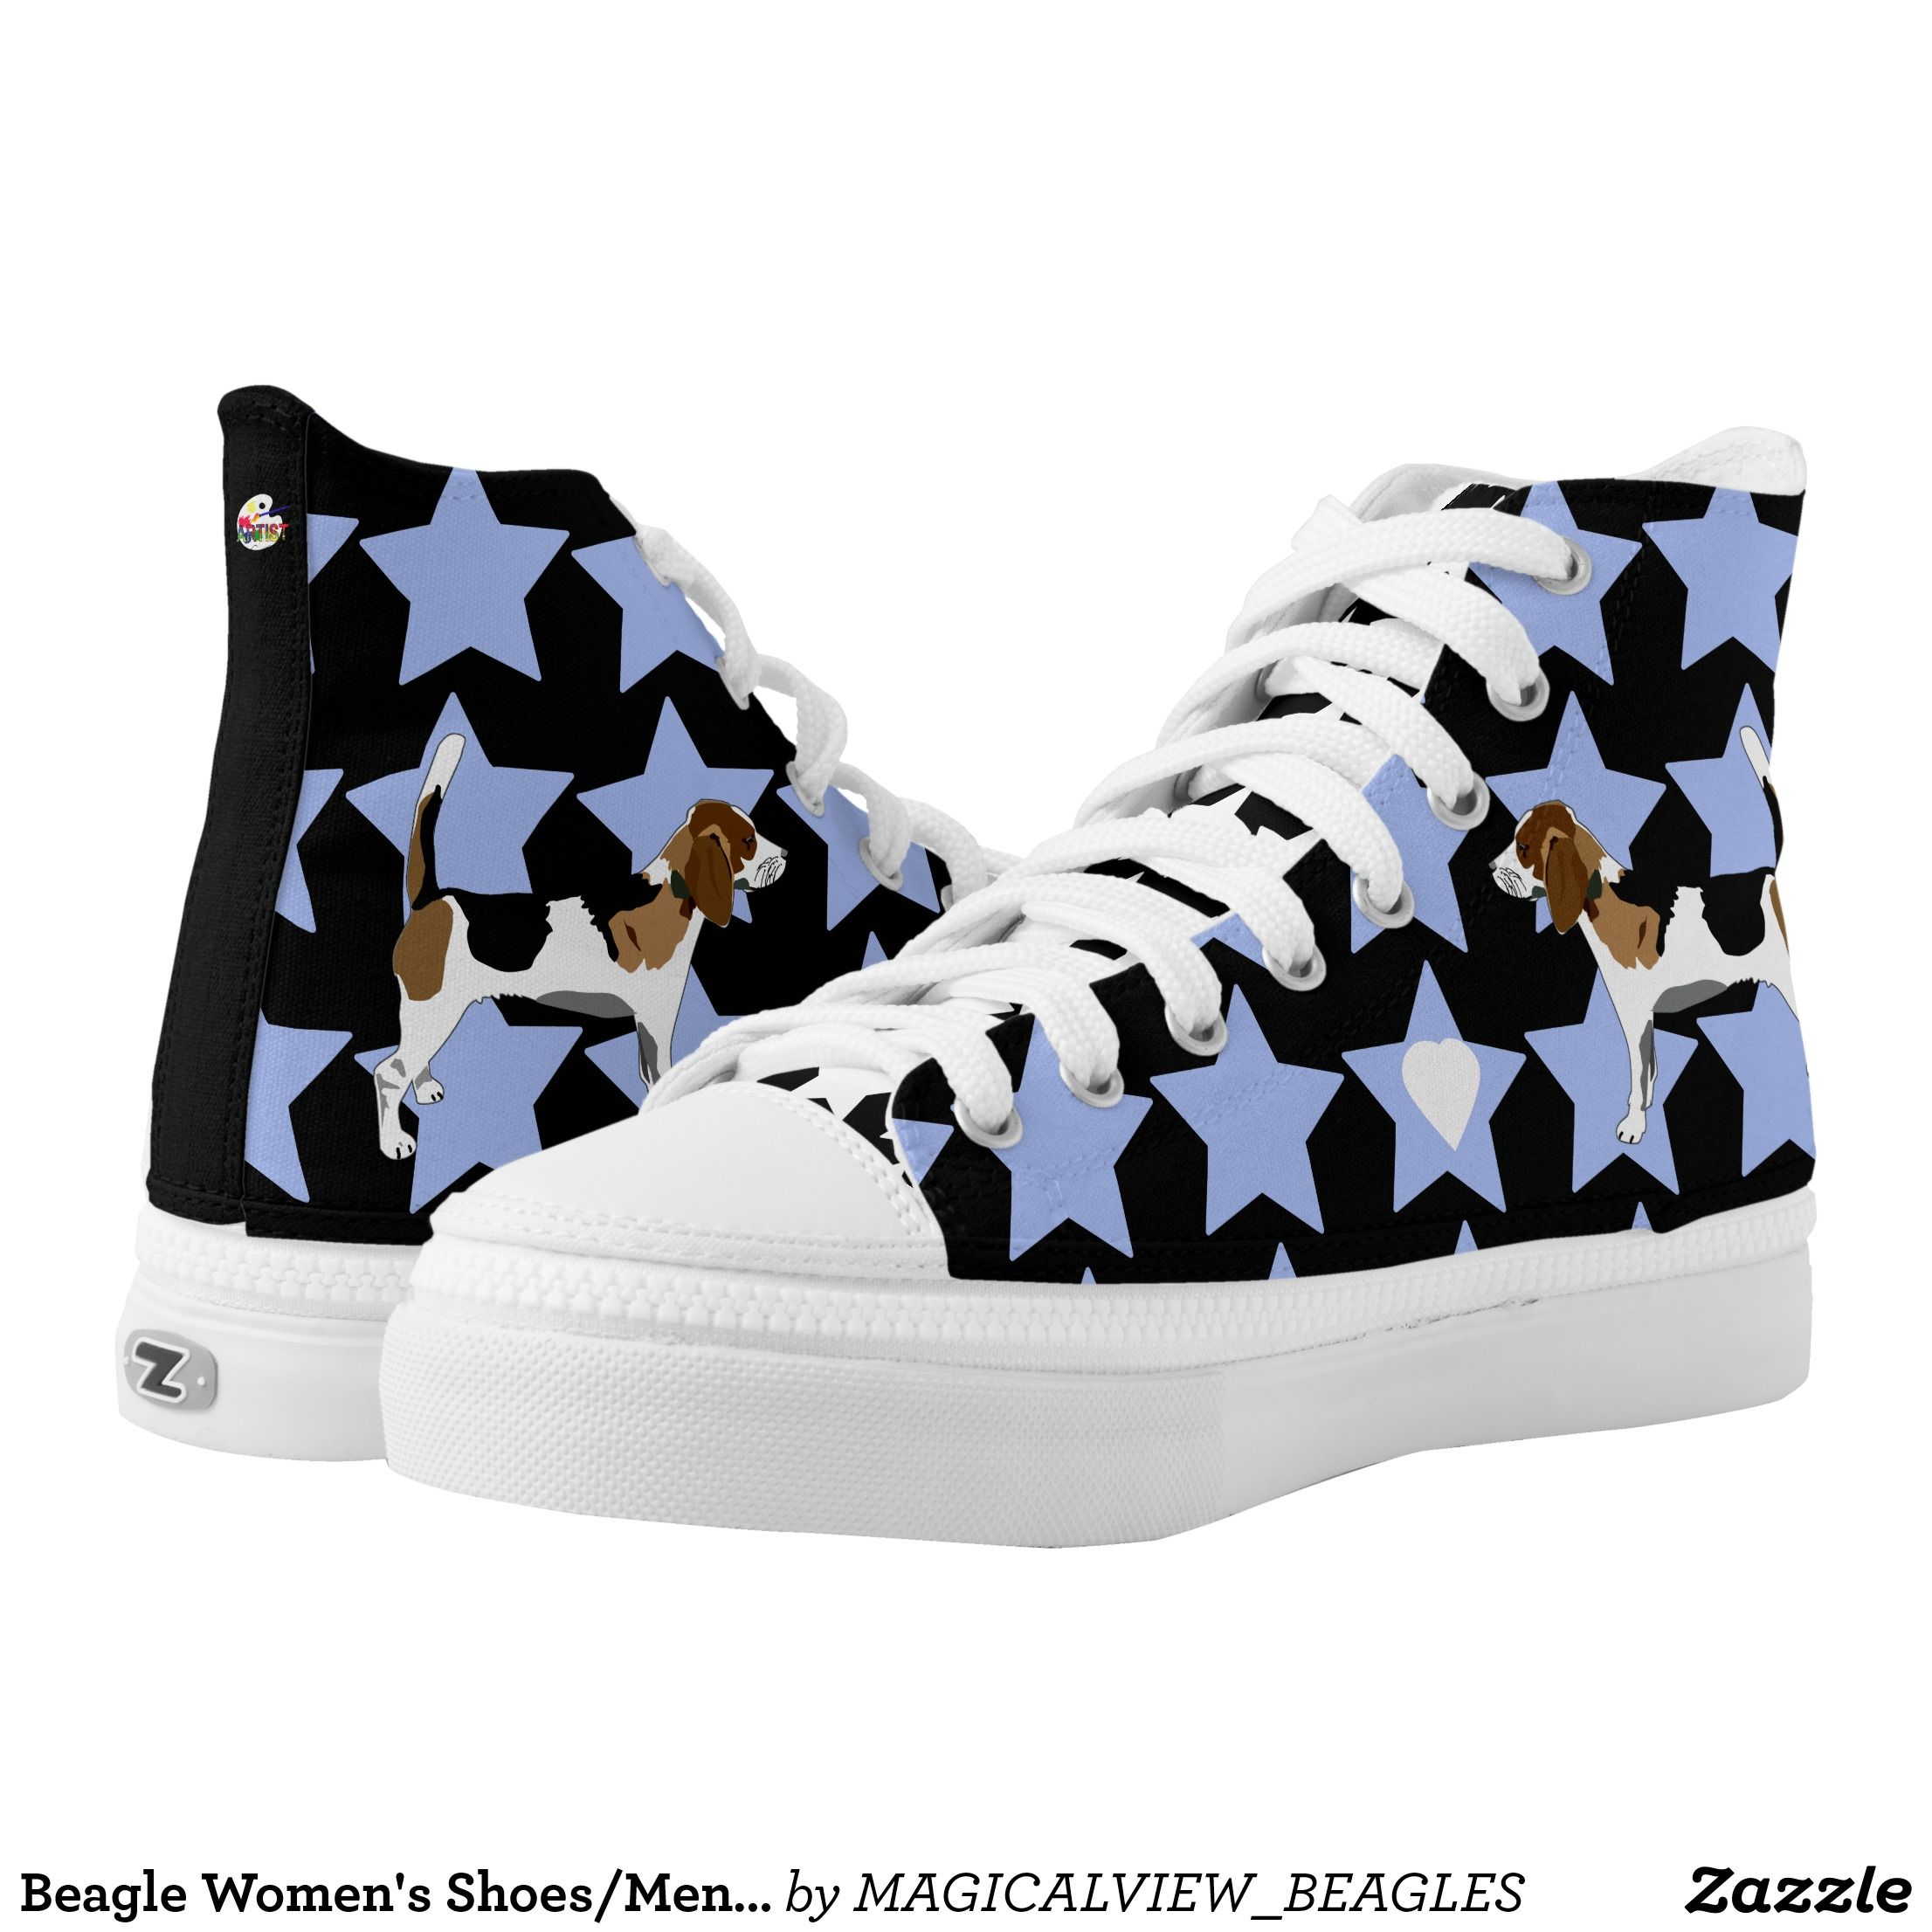 Beagle Women's ShoesMen's ShoesKids Shoes | yOIJA